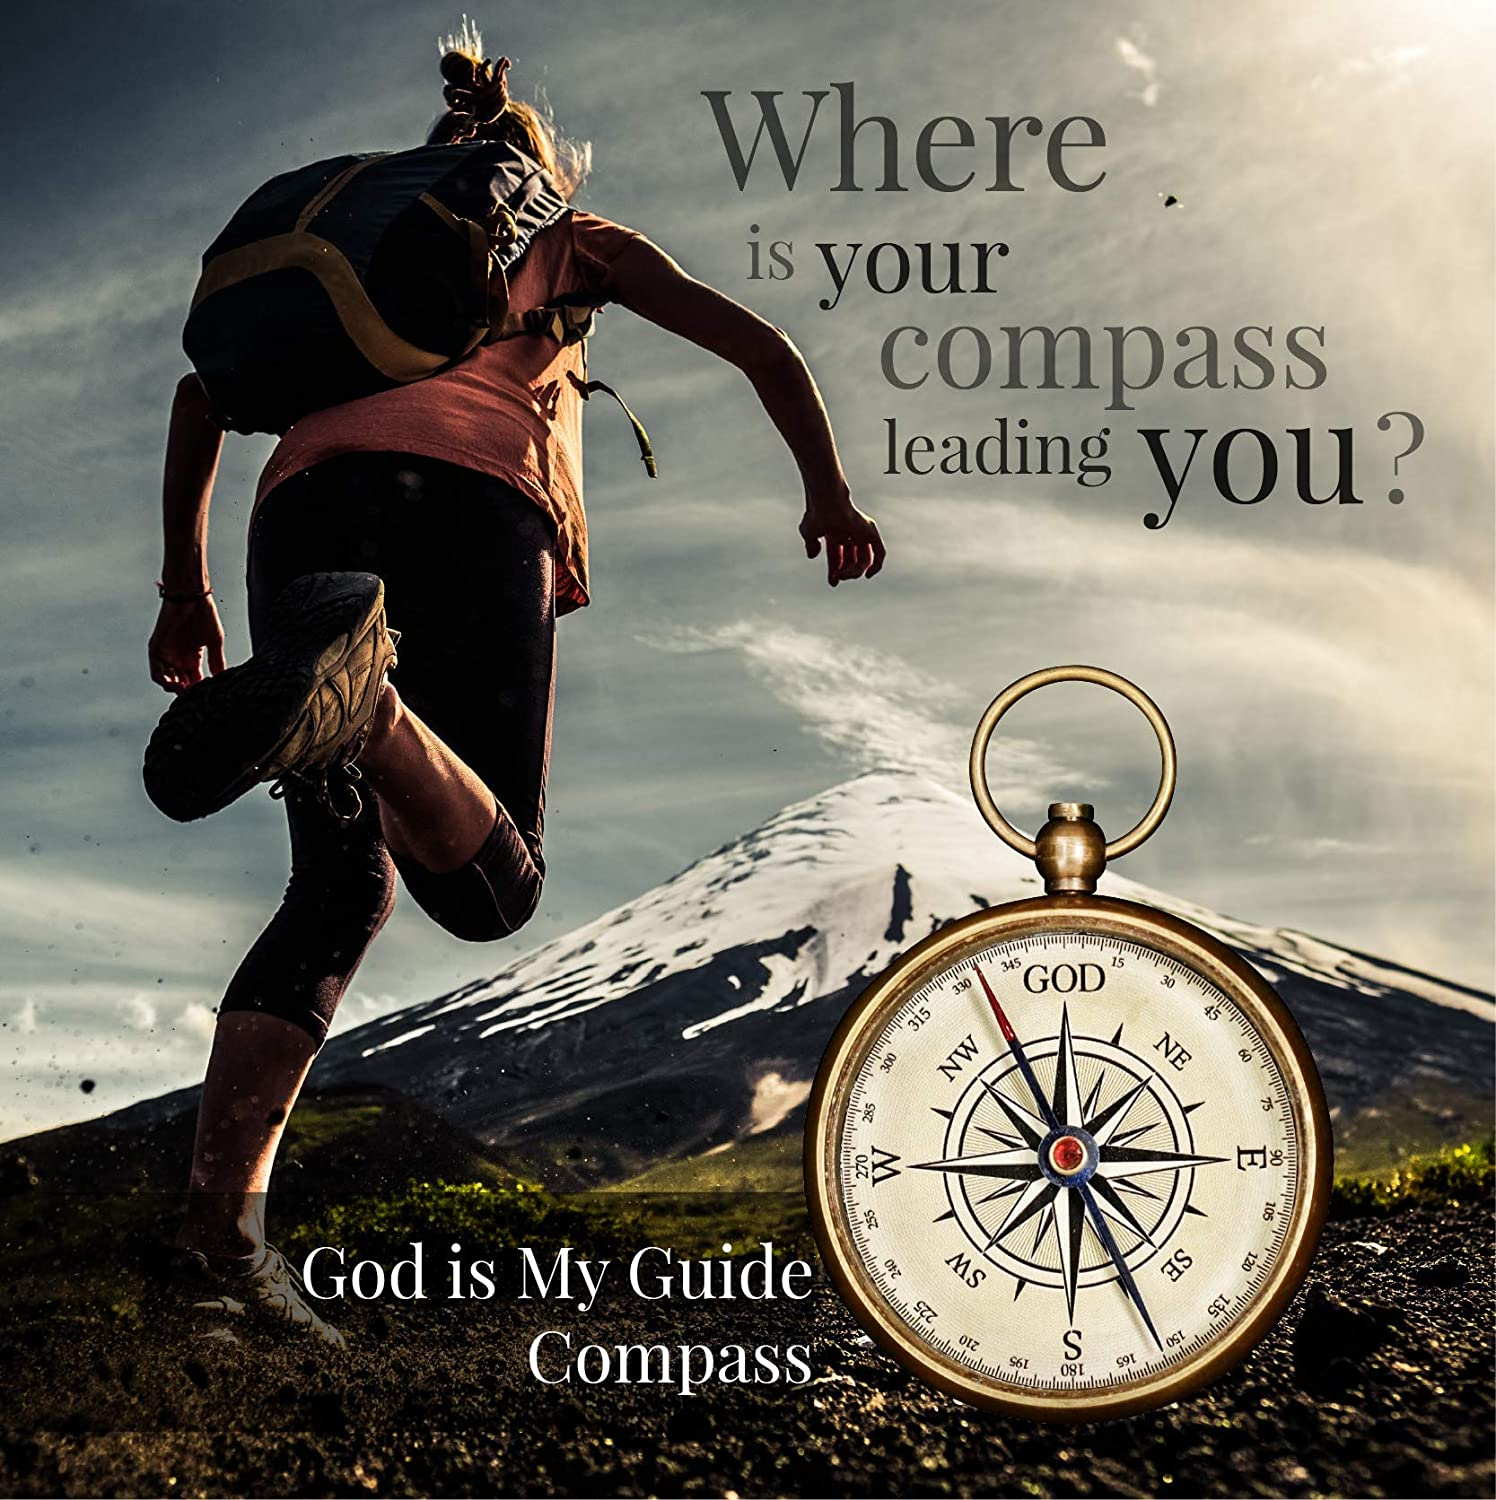 Details about  /GOD COMPASS-SIMPLE REMINDER TO TRUST GOD HE KNOWS THE WAY-GIFT